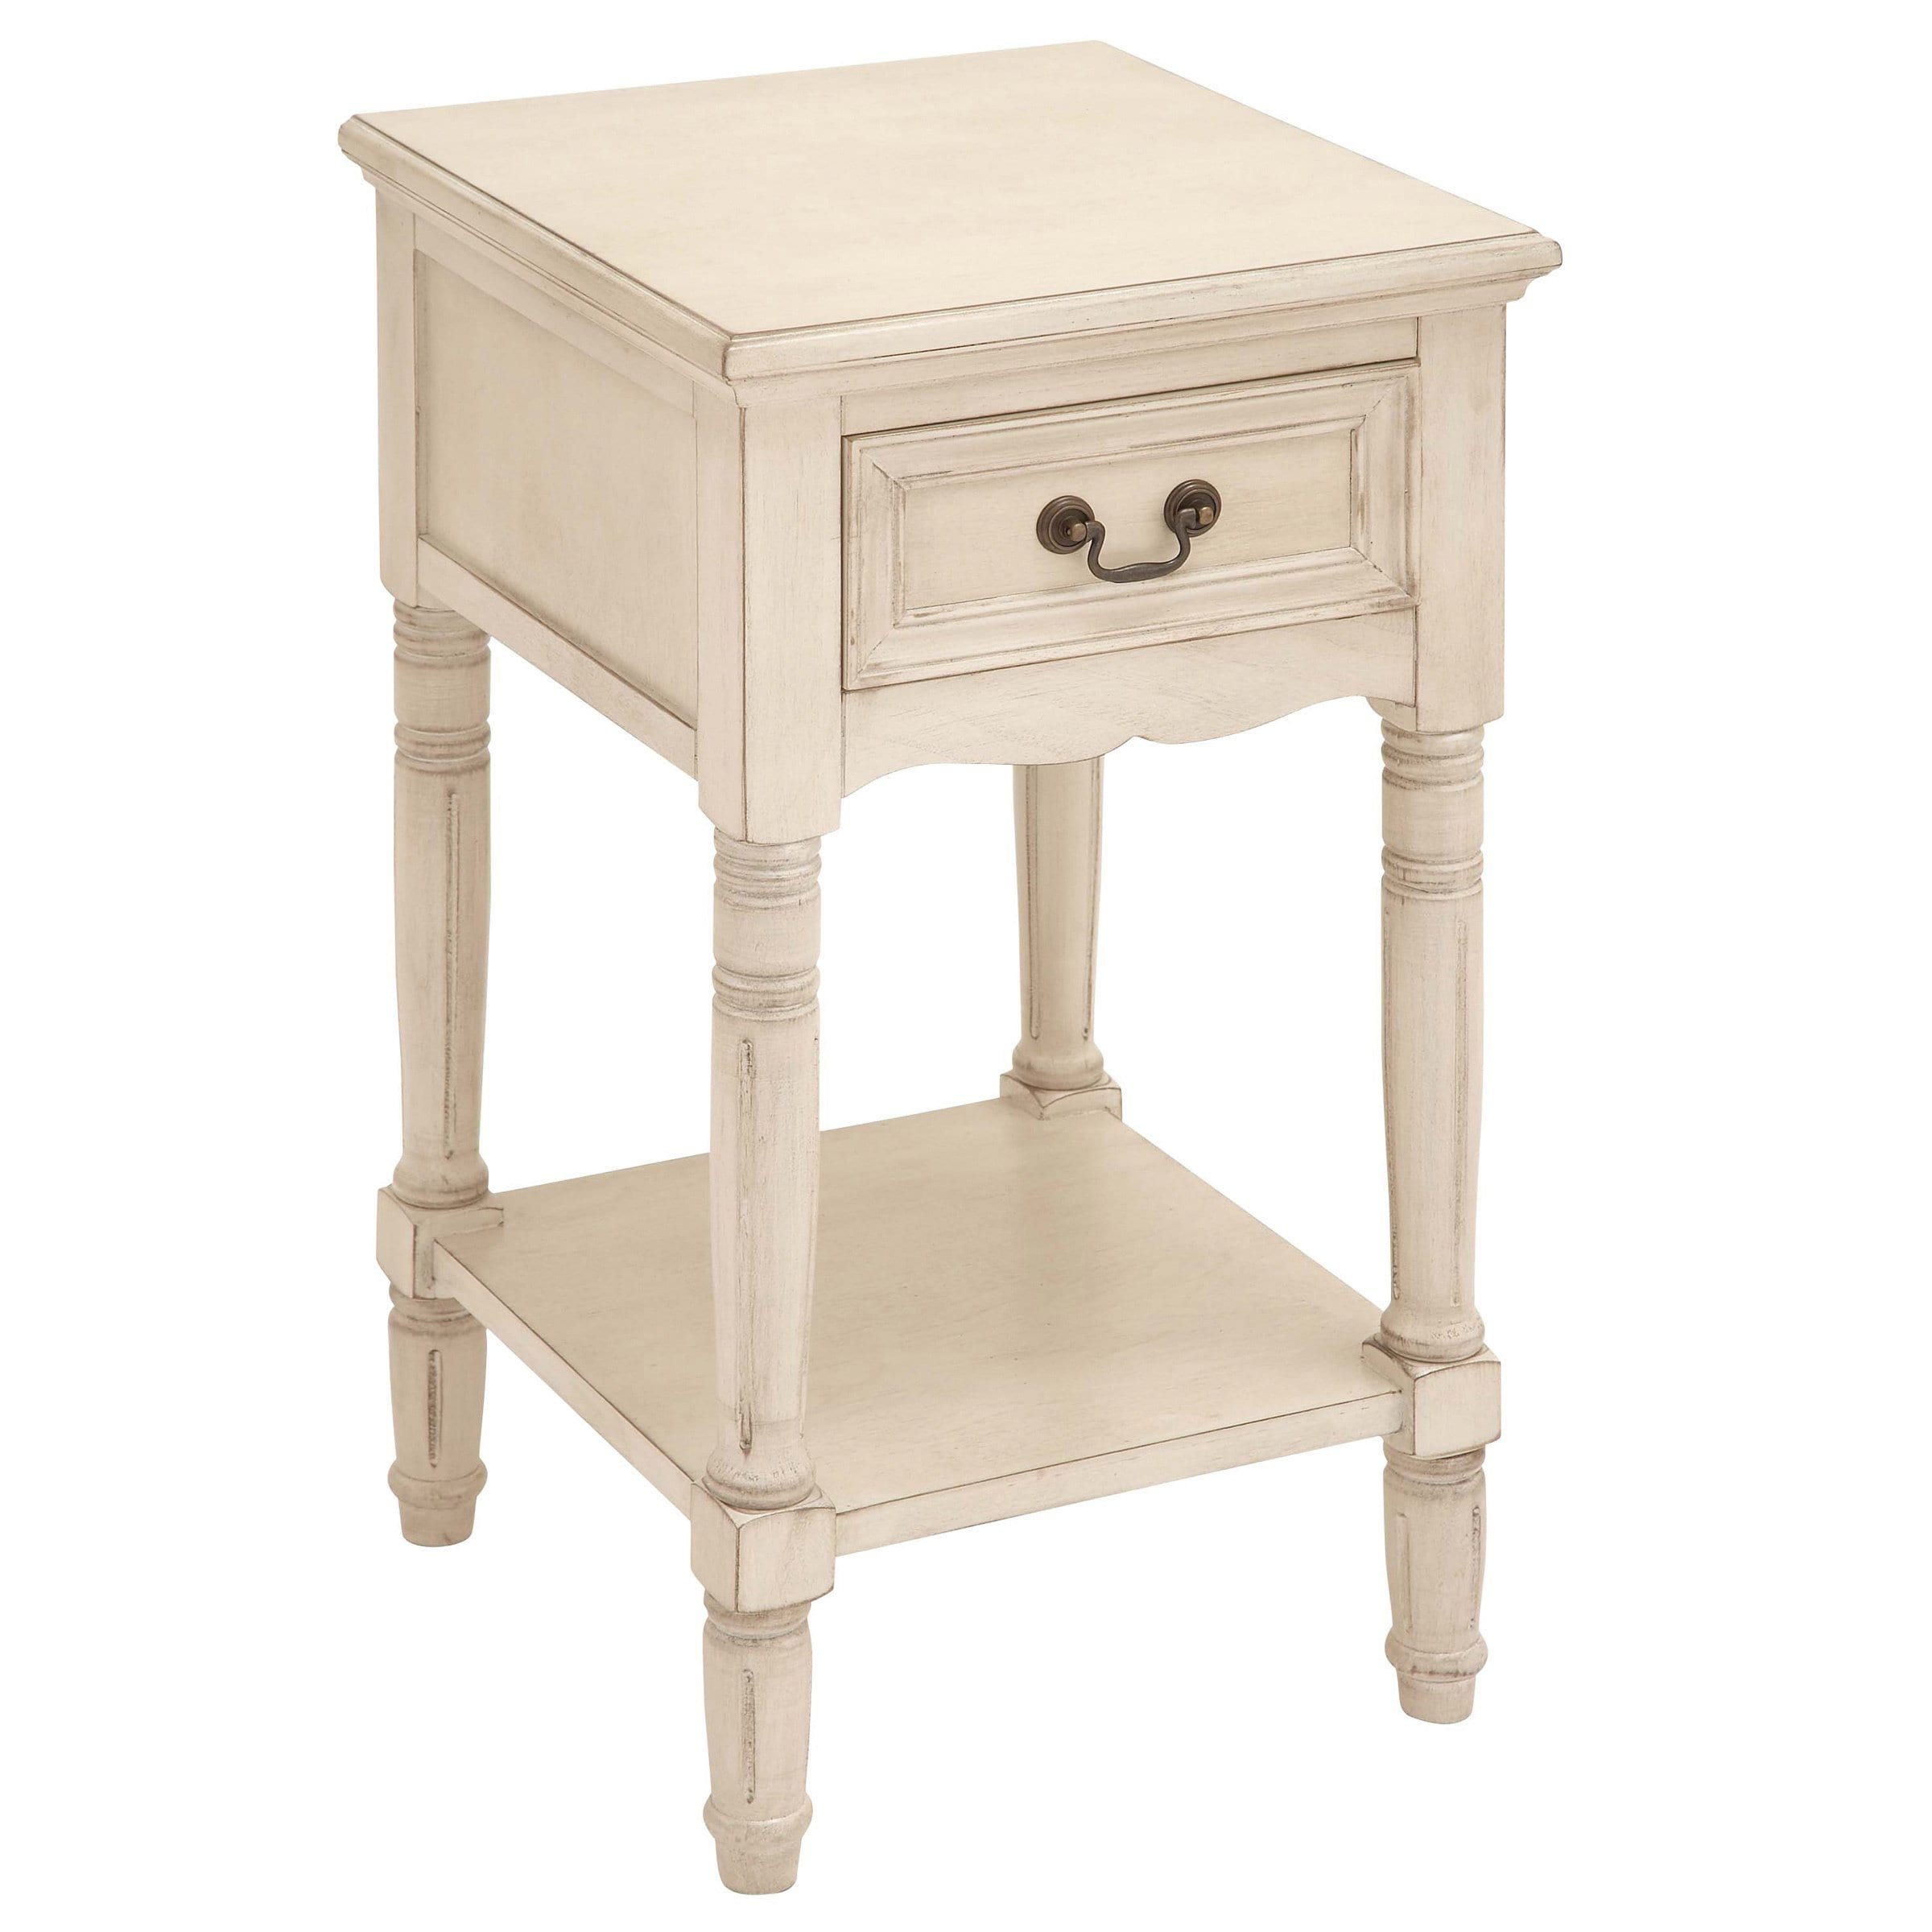 antiqued solid wood accent table night stand free shipping tesco bistro set tall mirror bedside height pier imports bedroom furniture wine cabinet black outdoor hall console diy